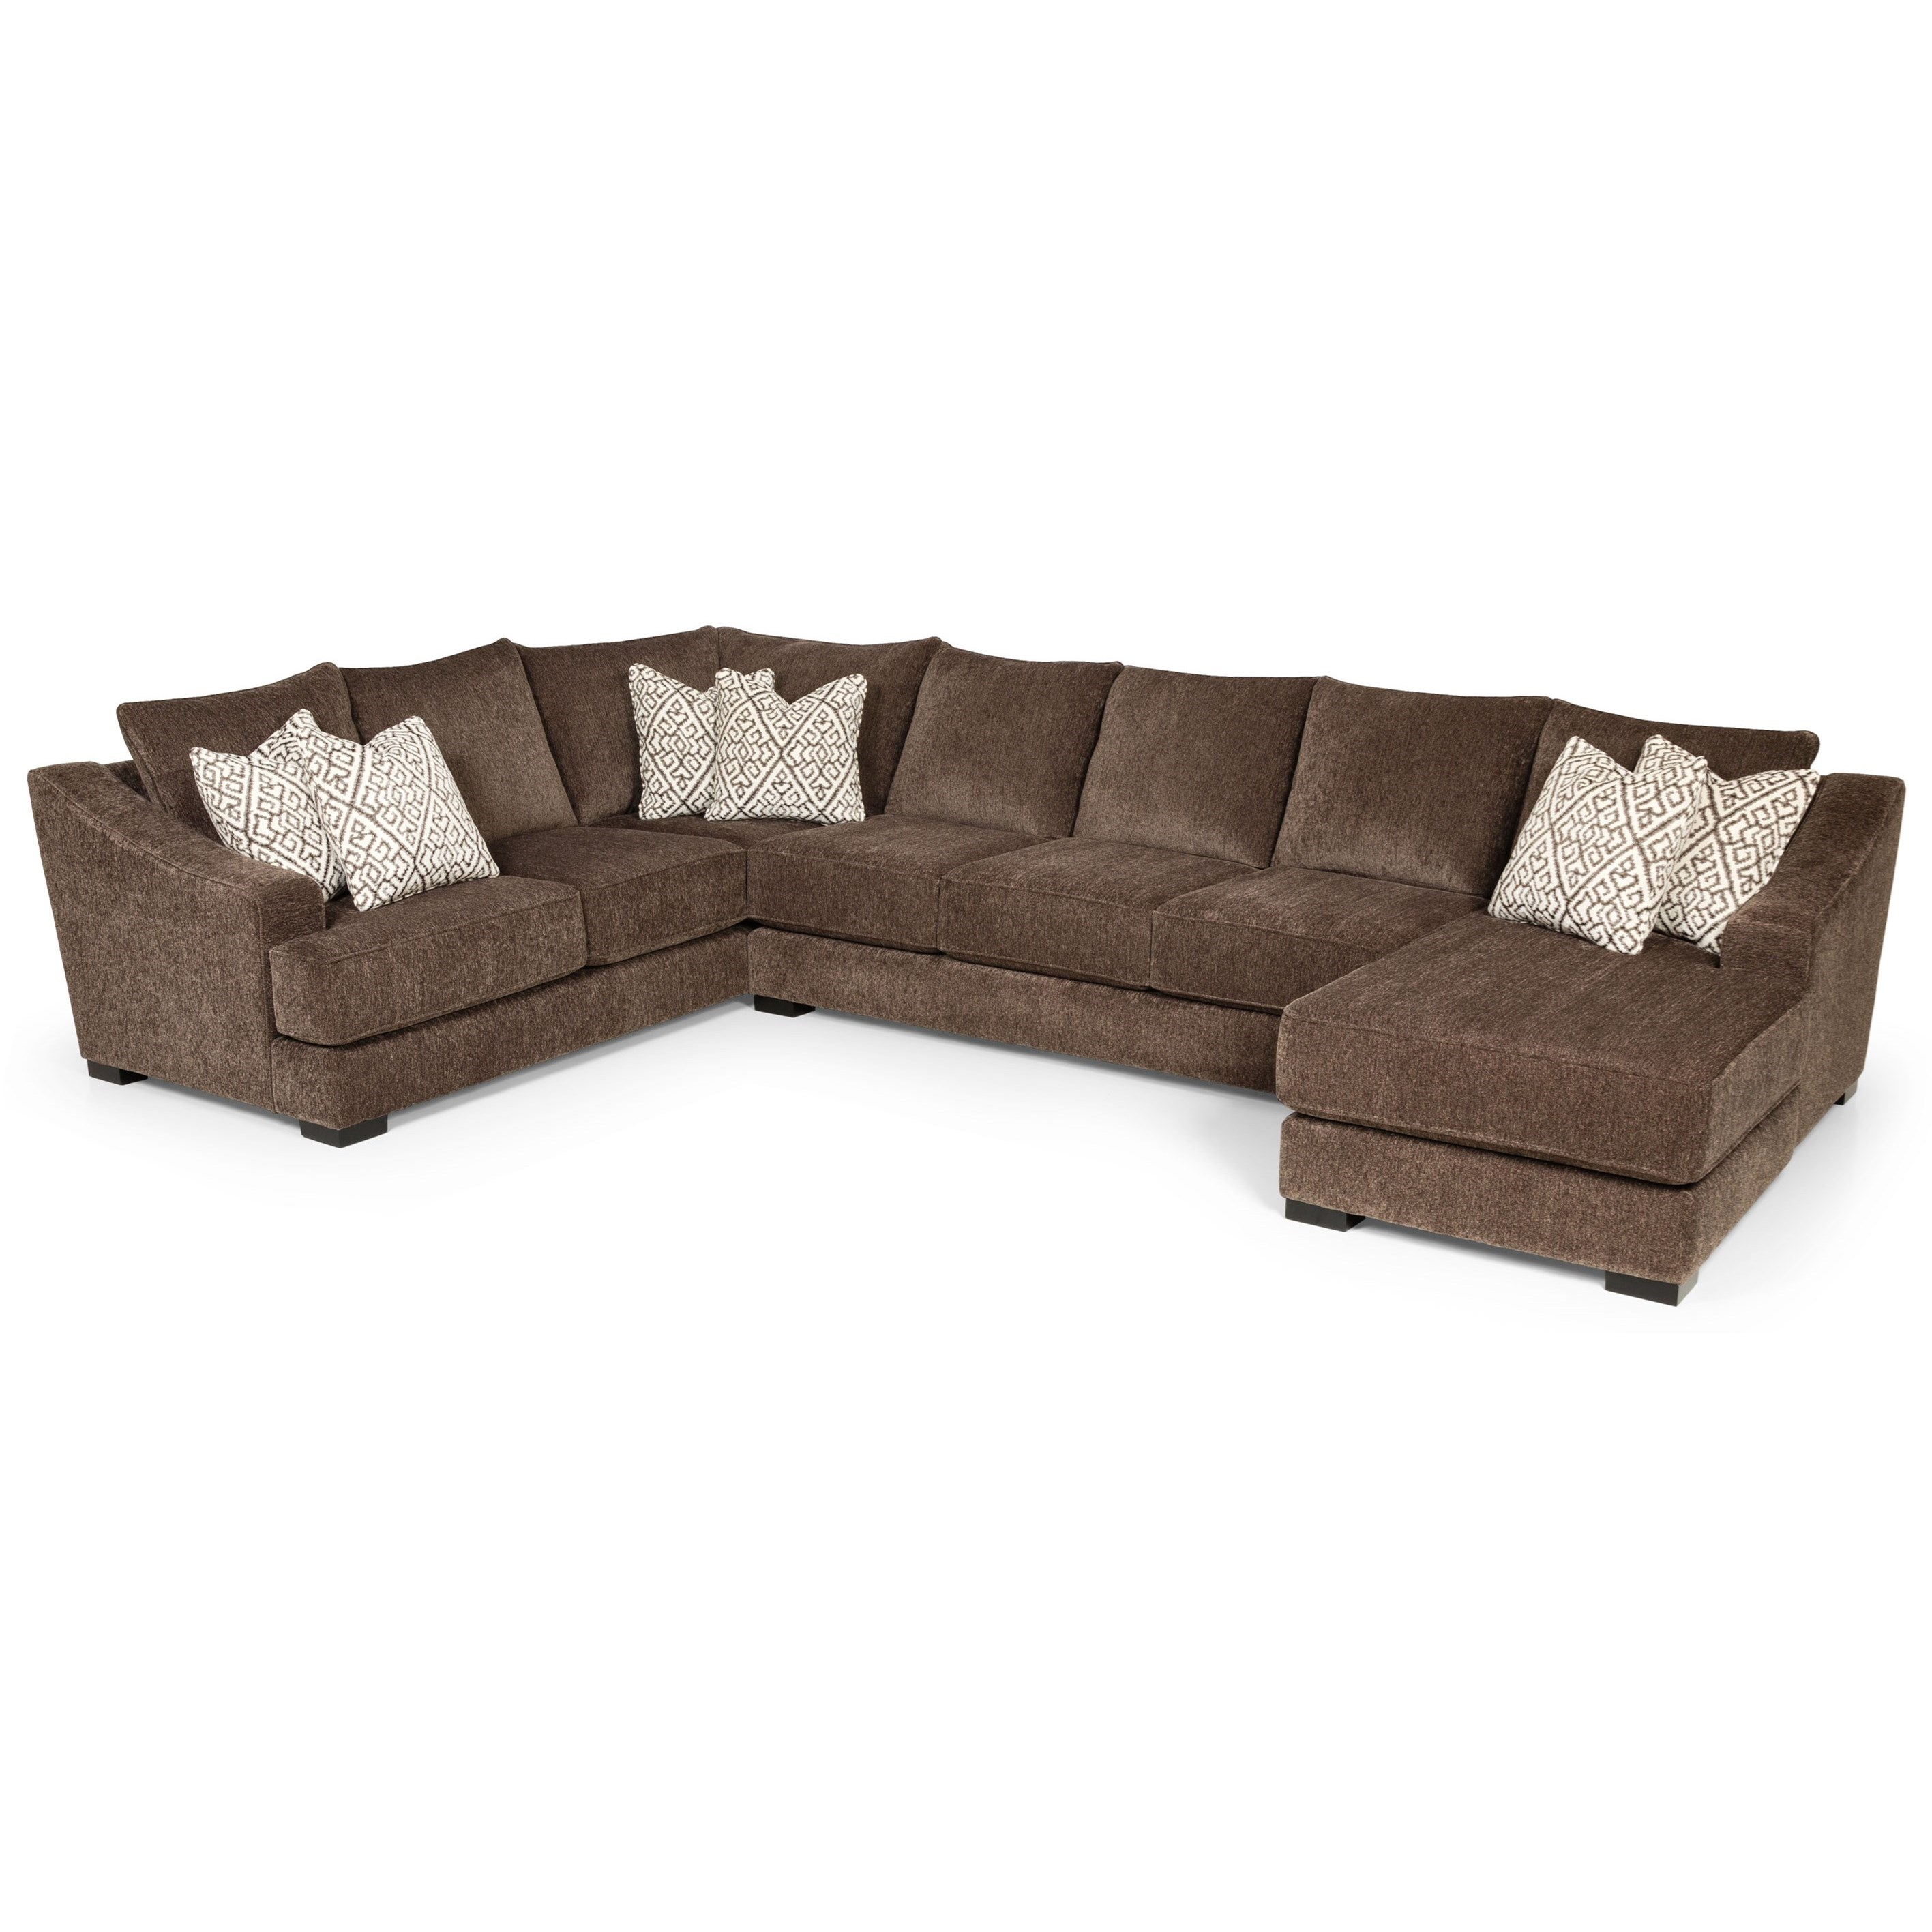 376 Sectional Sofa by Stanton at Rife's Home Furniture